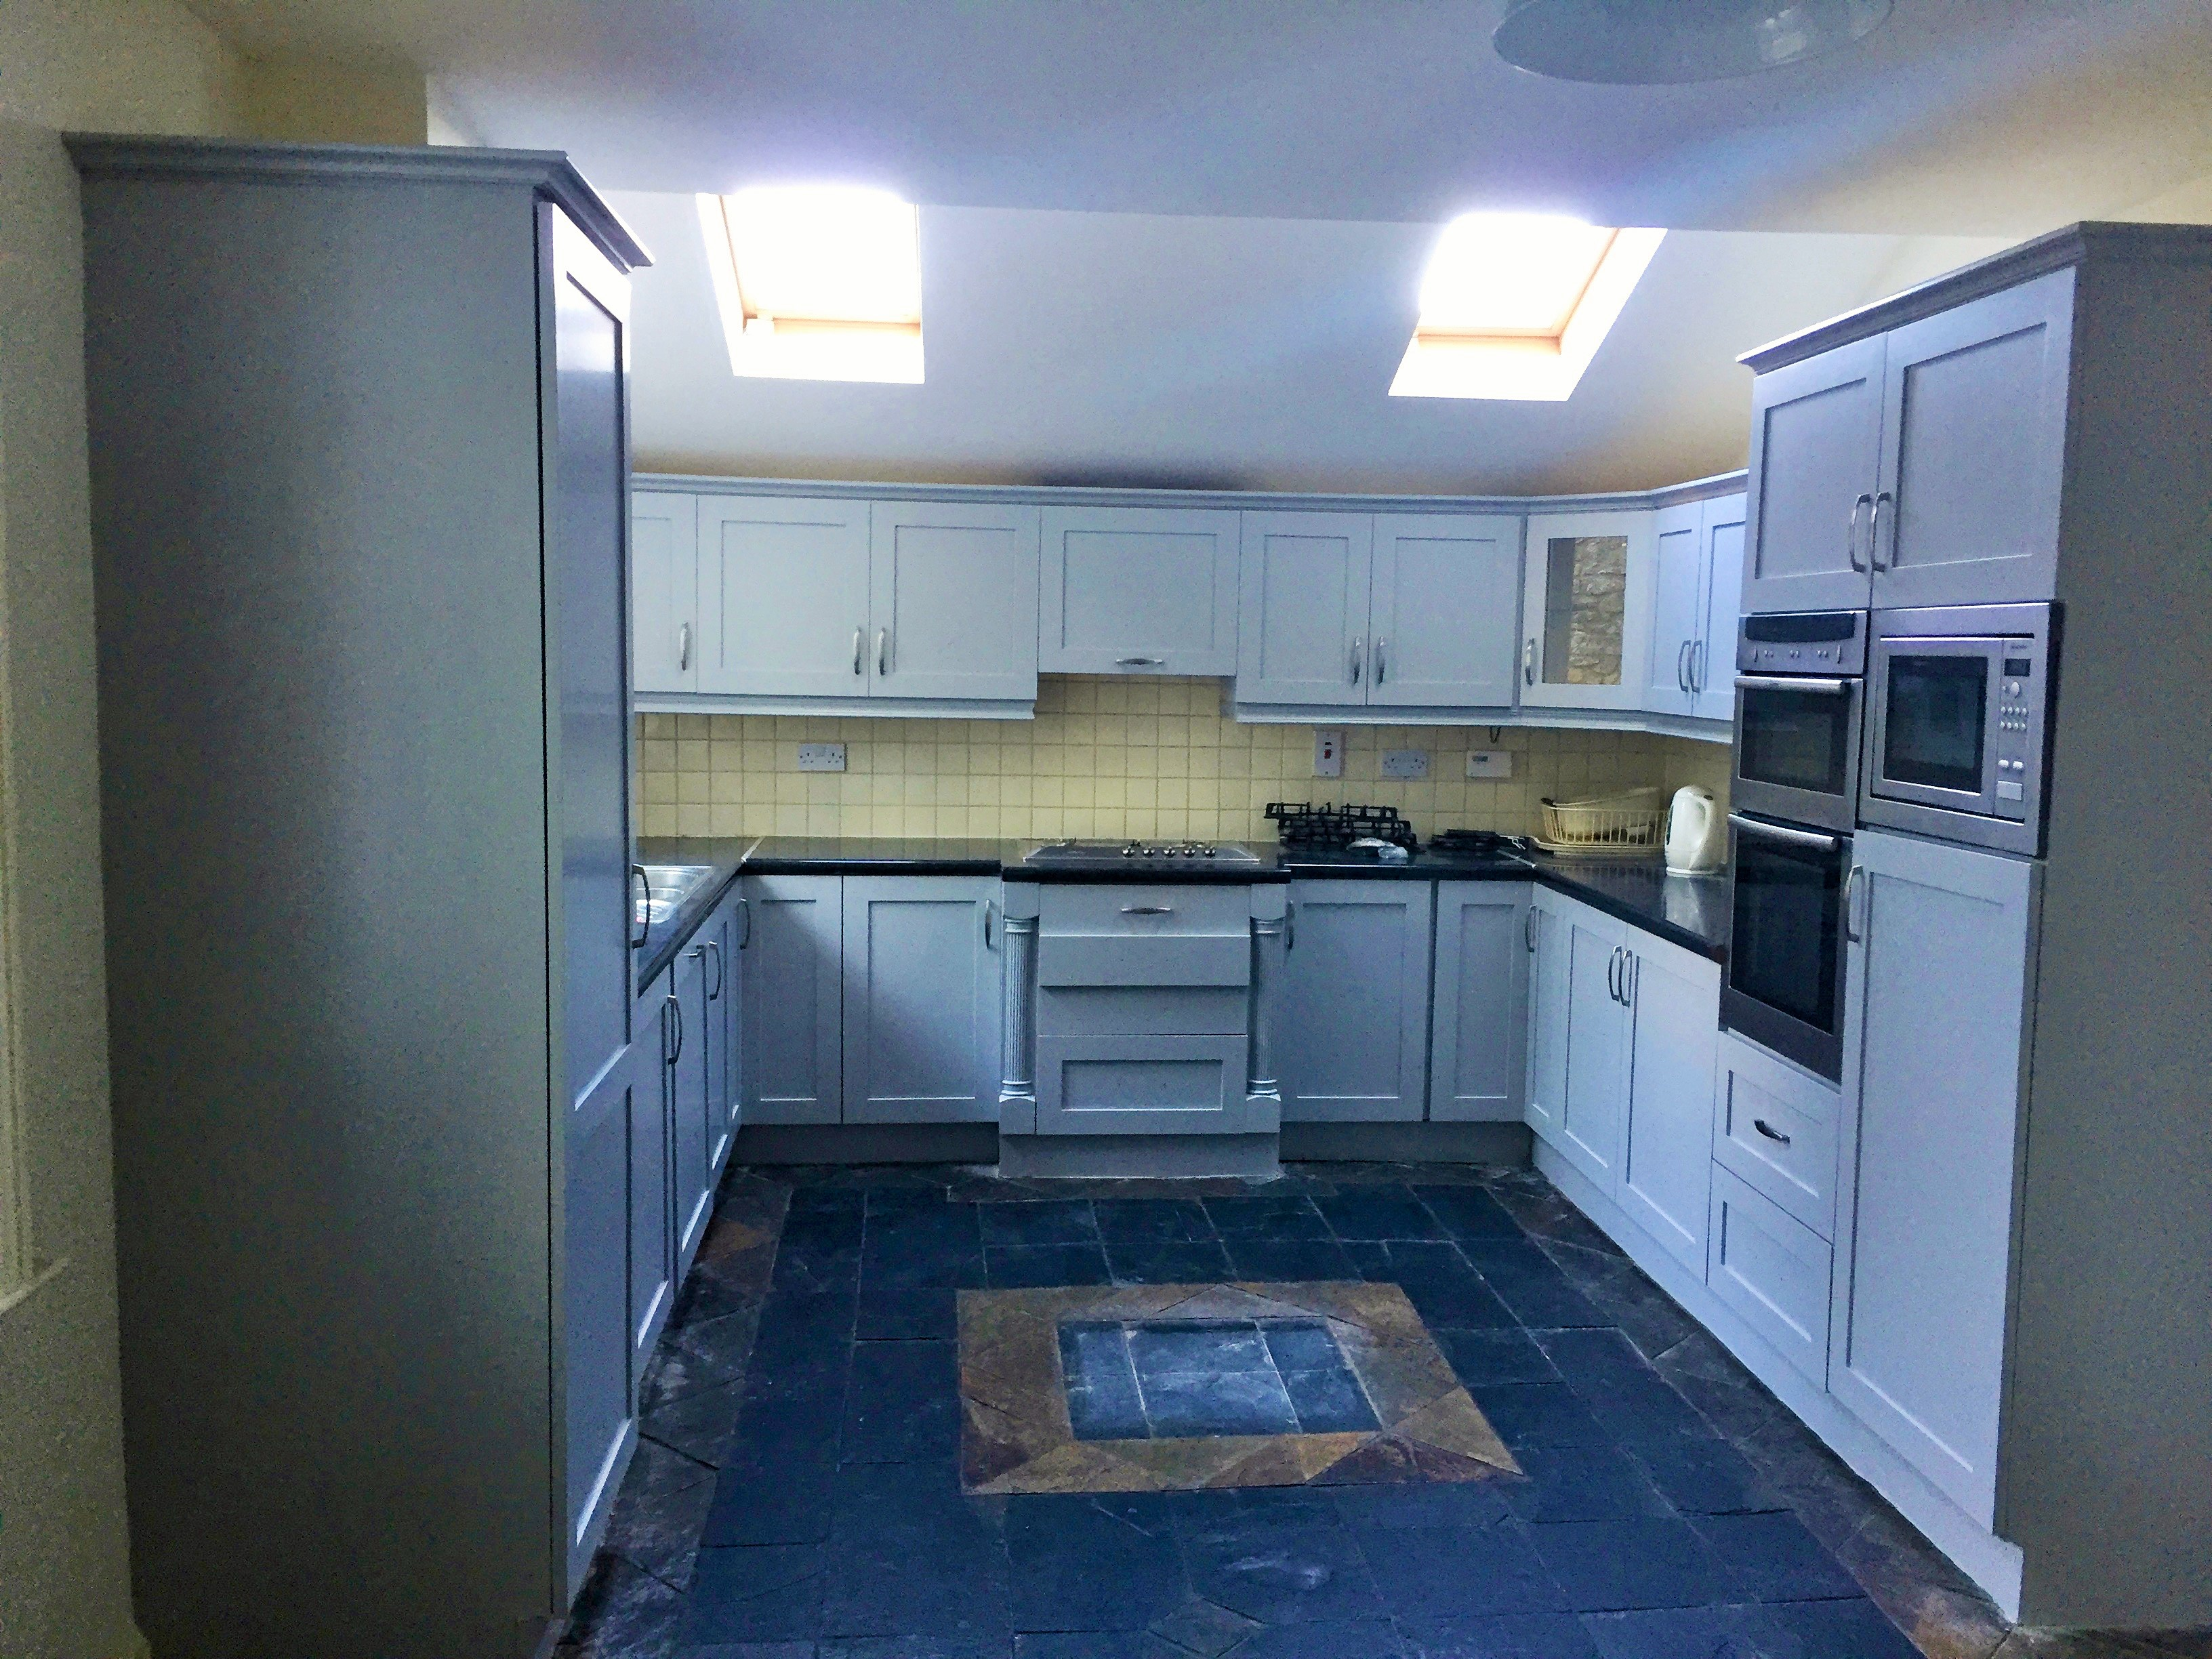 How to paint a laminated surfaces - after photo of a laminated kitchen we painted in Sandycove by Impressions Painting and Decorating